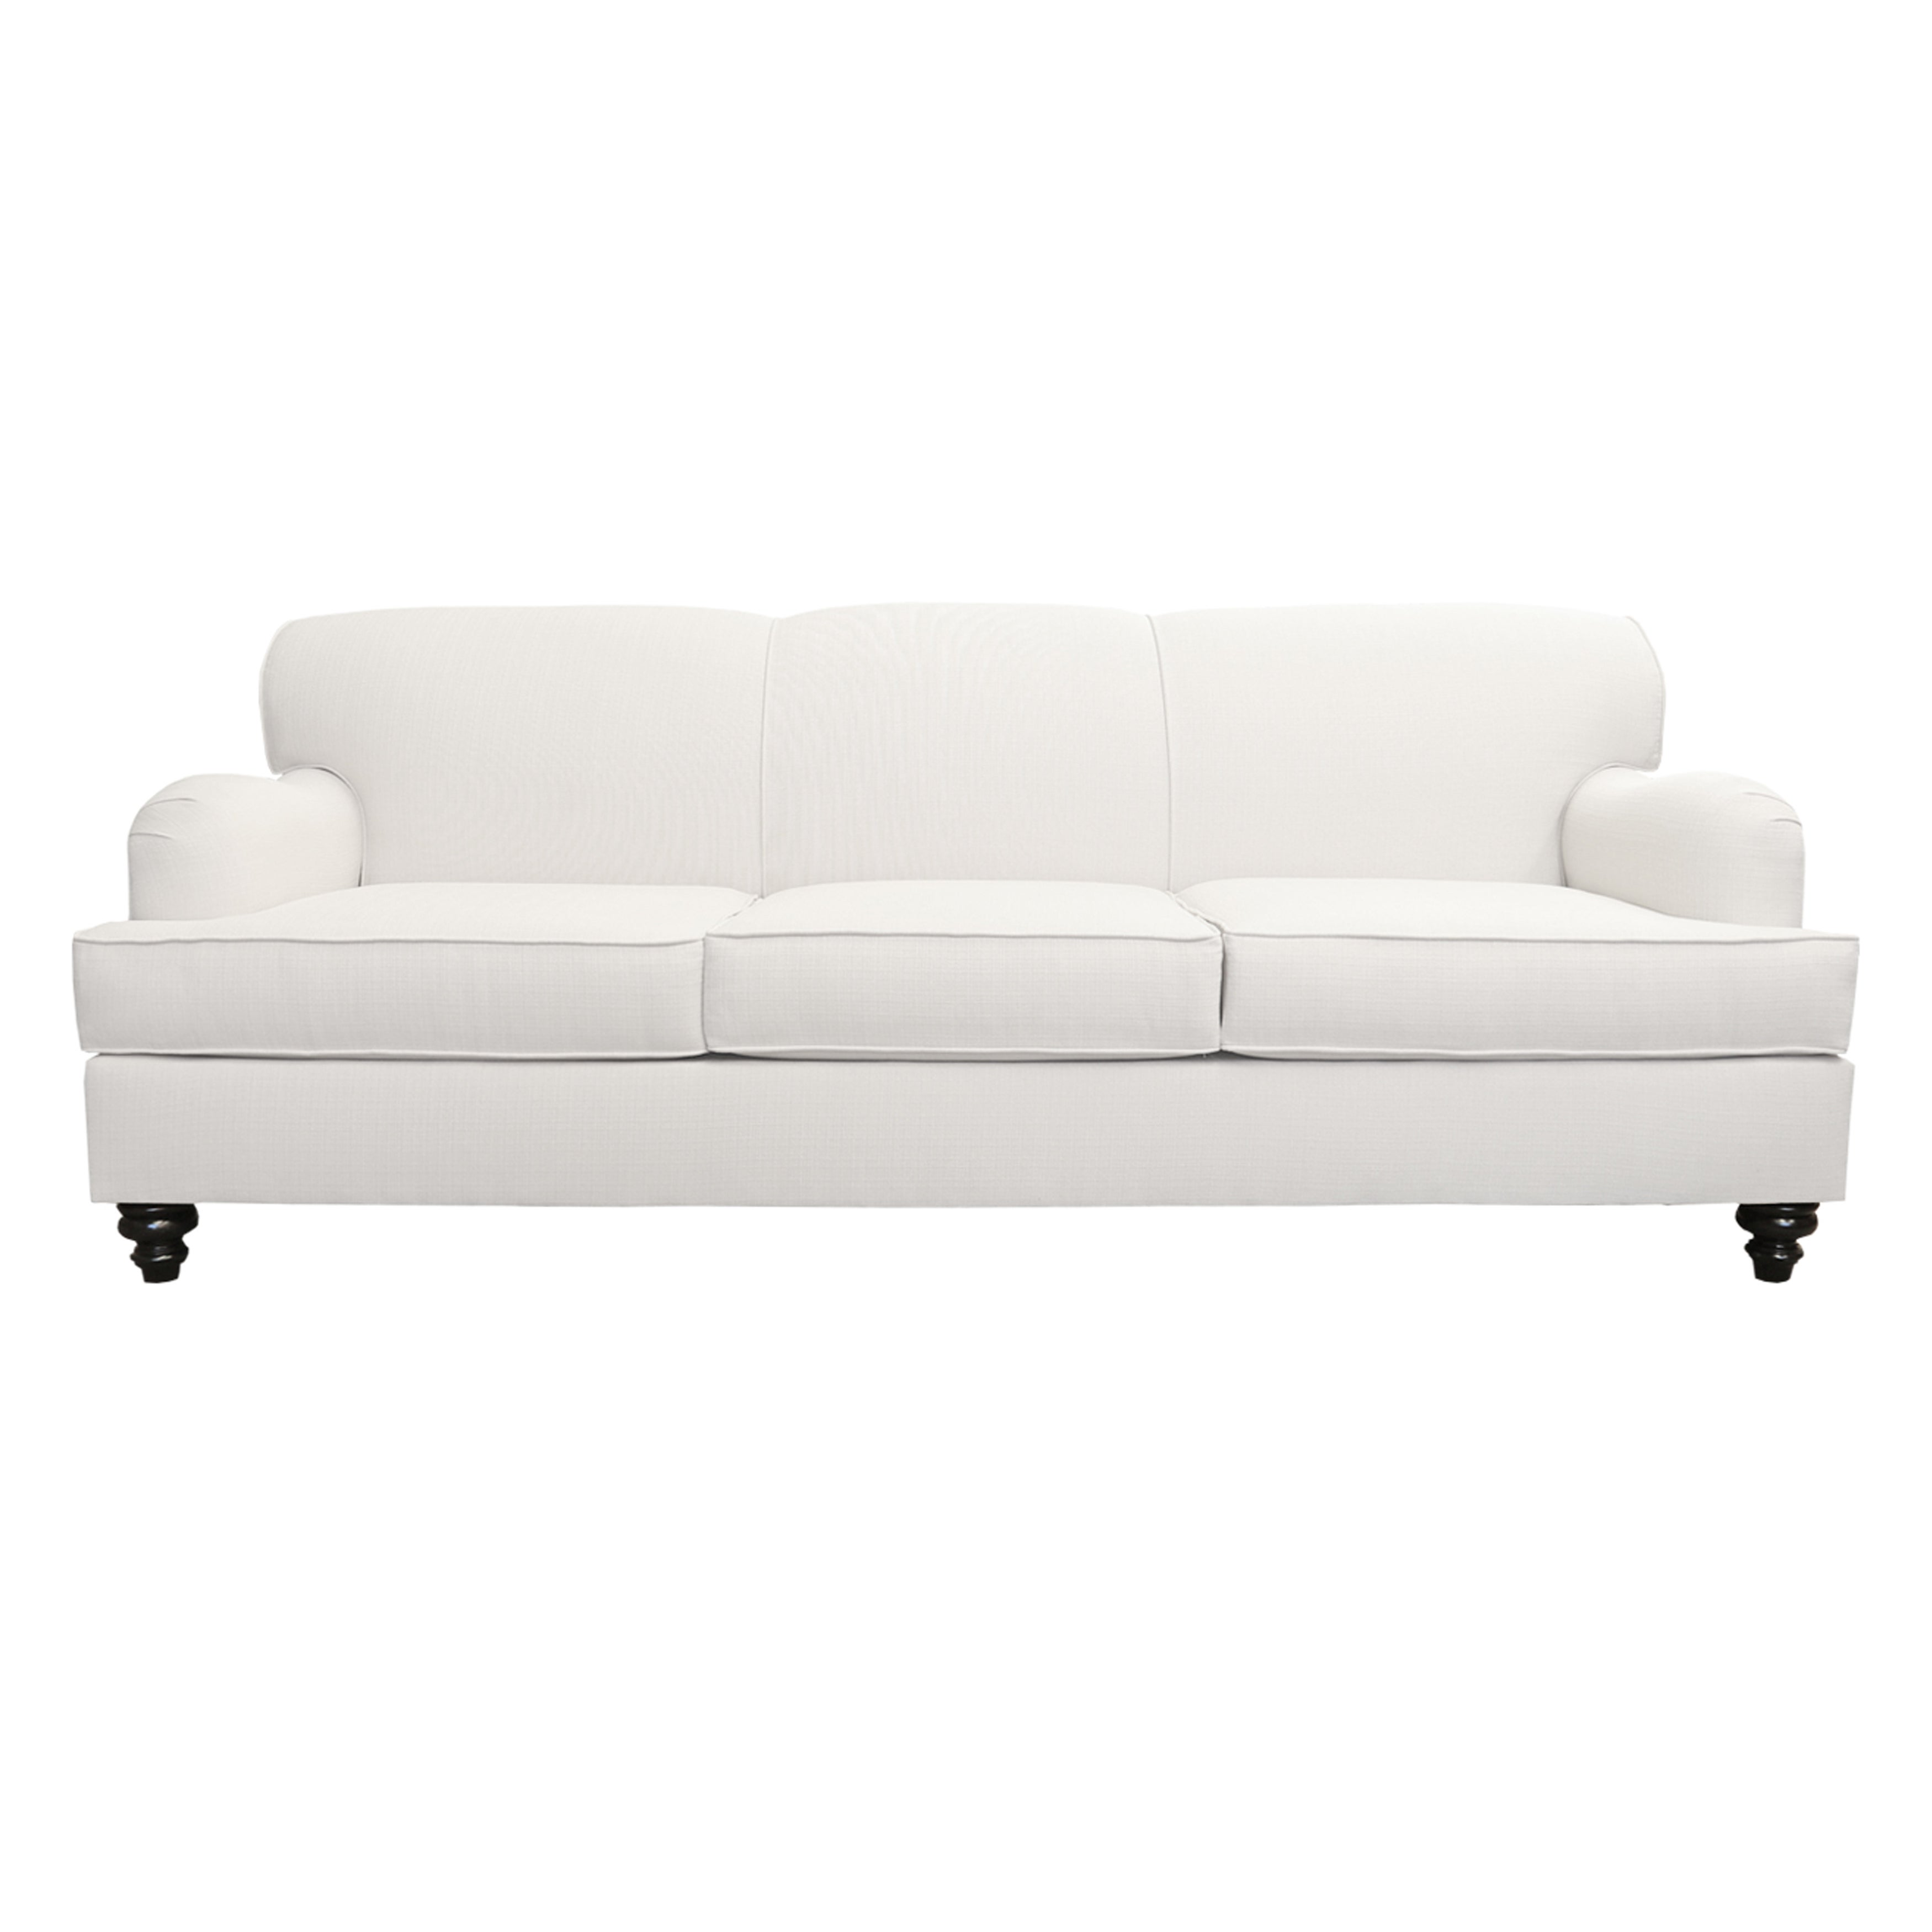 Alice Tradtional Roll Arm Sofa Free Shipping Today 14587757